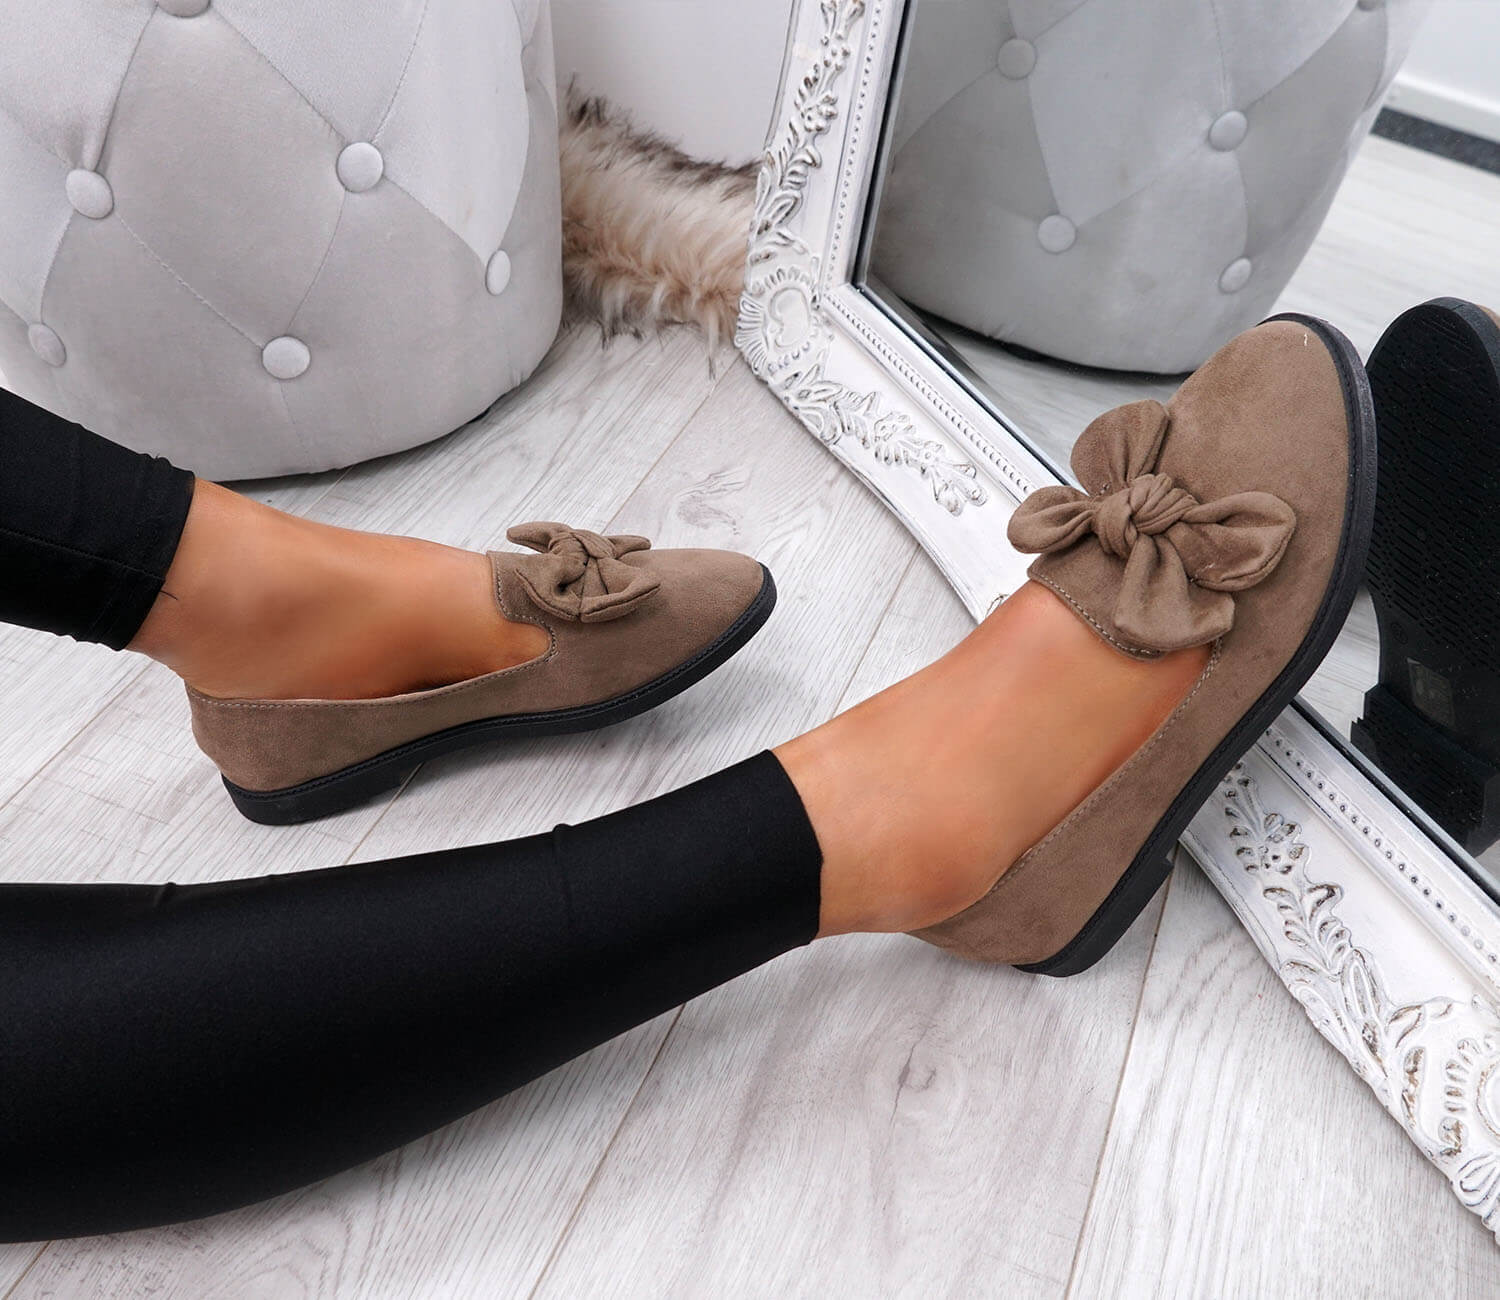 WOMENS-LADIES-BOW-BALLERINA-PUMPS-FLATS-SLIP-ON-BALLET-CASUAL-WORK-SHOES-SIZE thumbnail 30